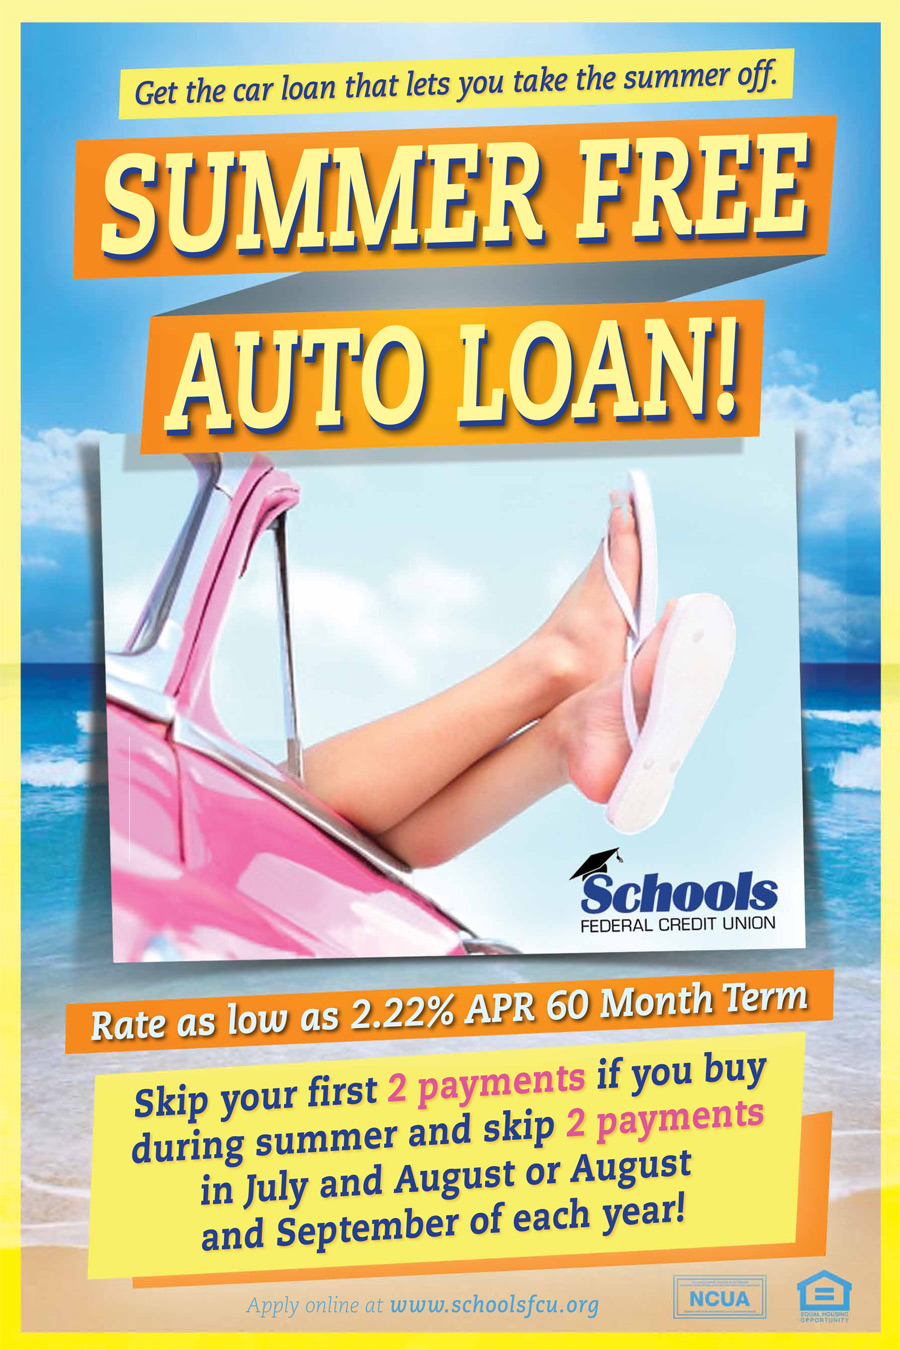 SFCU_Summer-Free-Auto-Loan_Poster-Proof---WEB.jpg